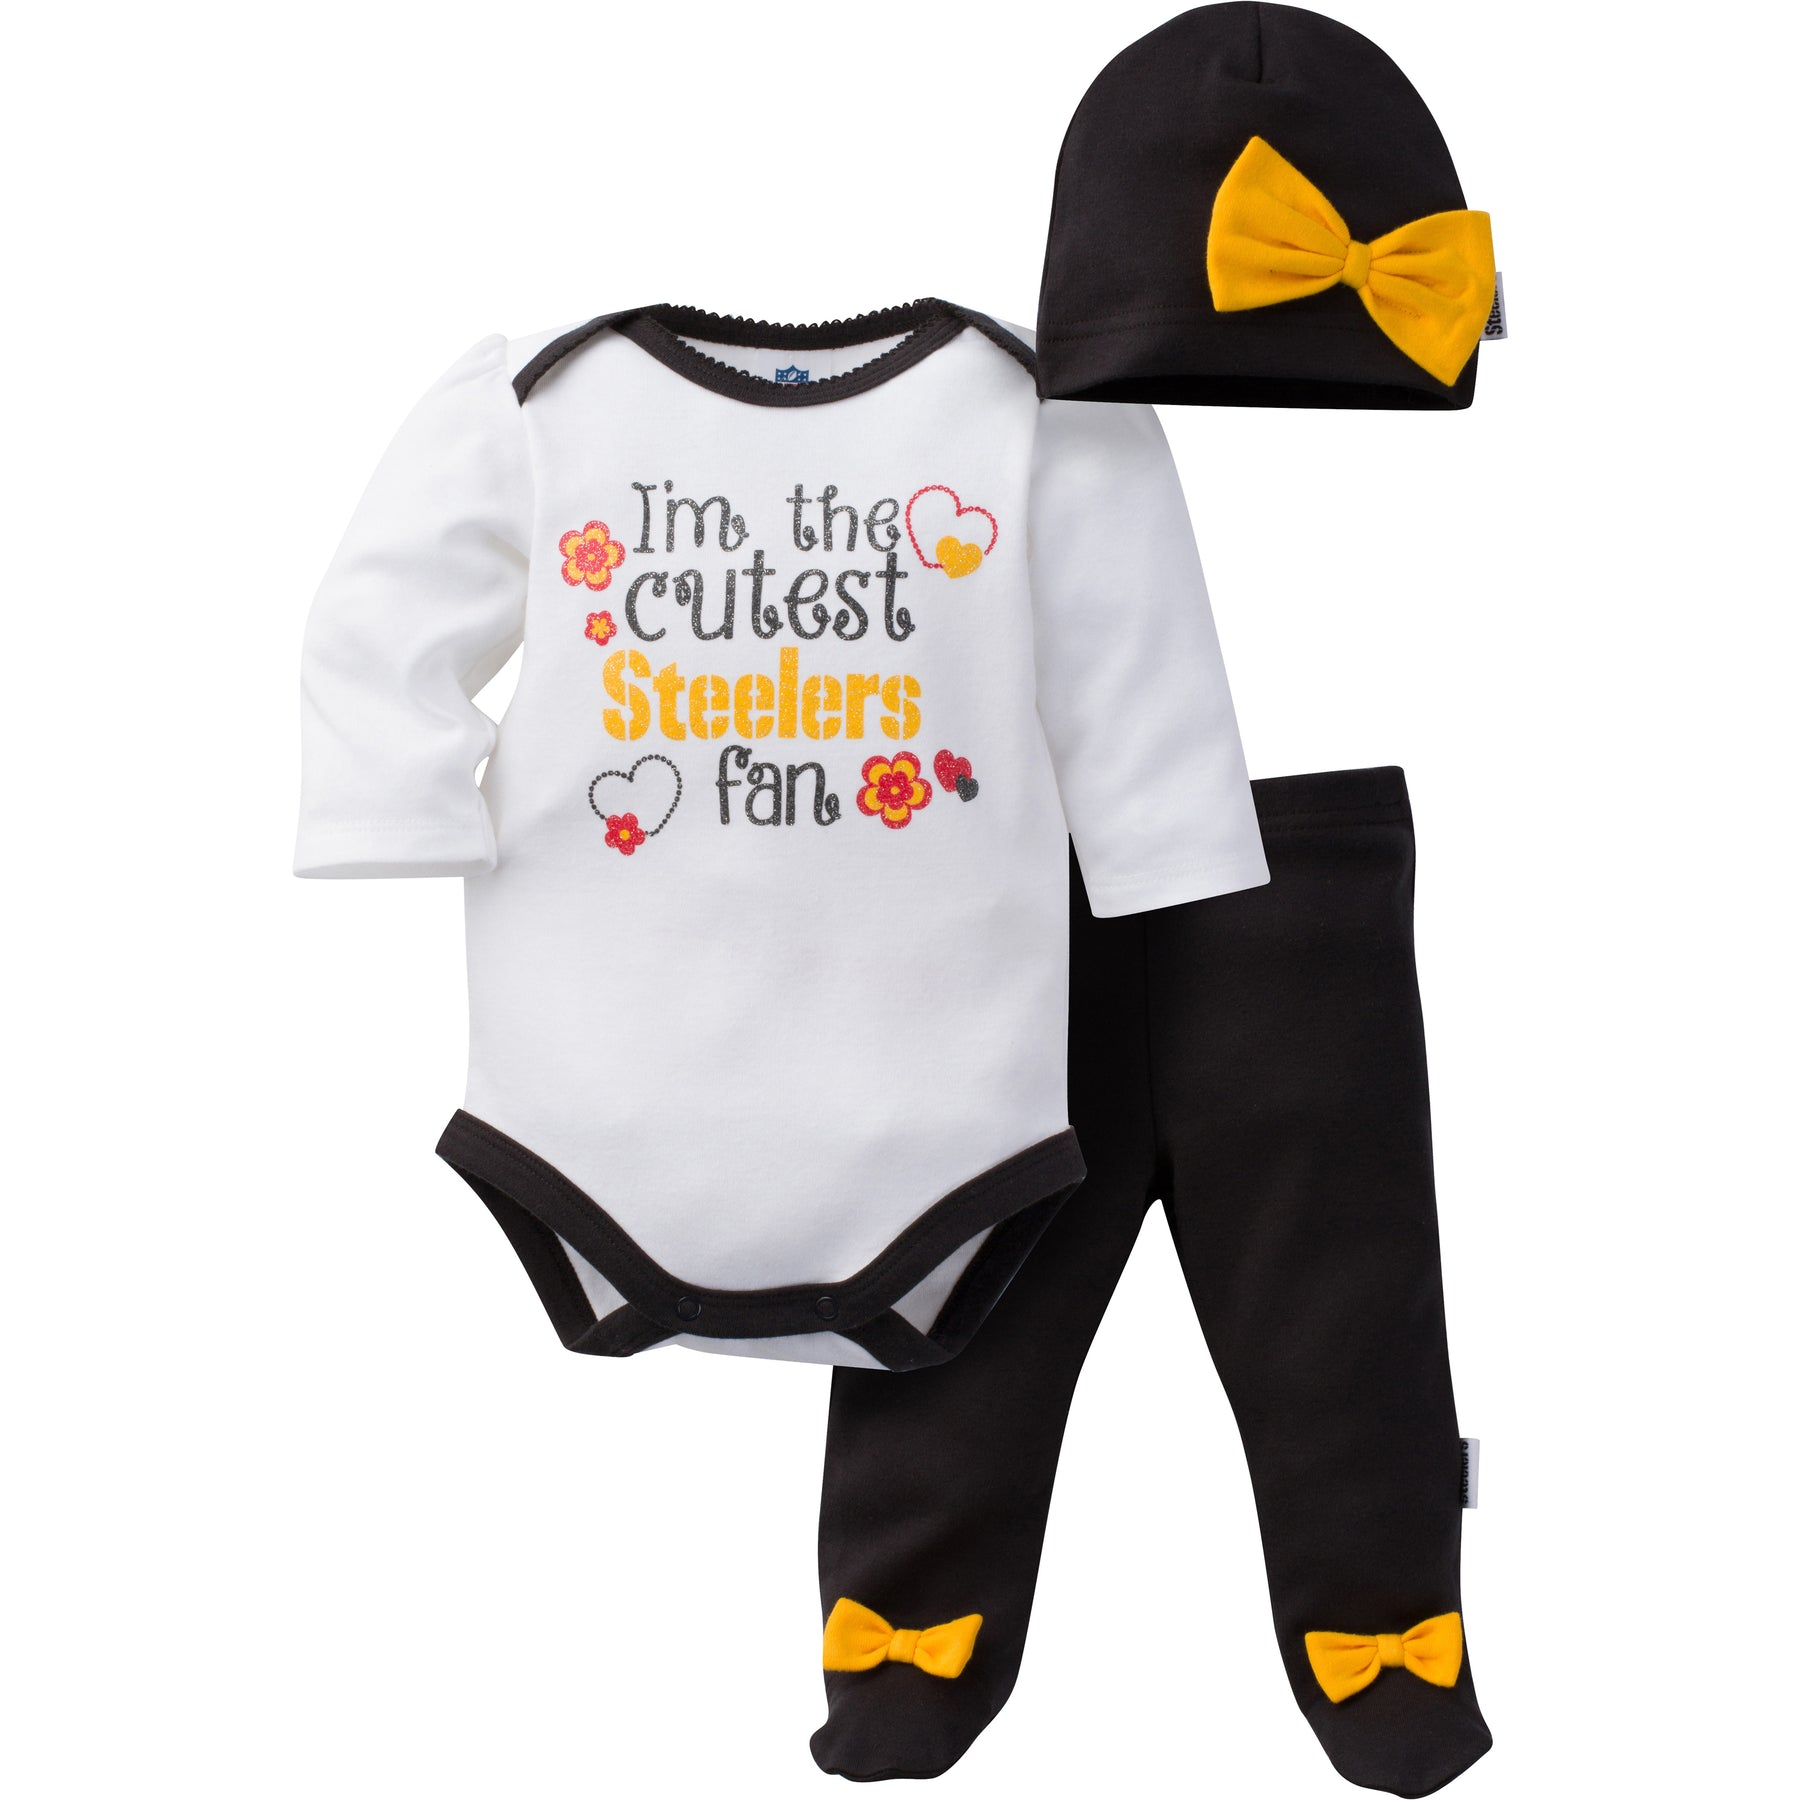 With high quality Pittsburgh Steelers apparel to choose from, including t-shirts, sweatshirts, jackets, polos, and more, the official online store of the Pittsburgh Steelers is your top online source for all Steelers apparel and clothes.